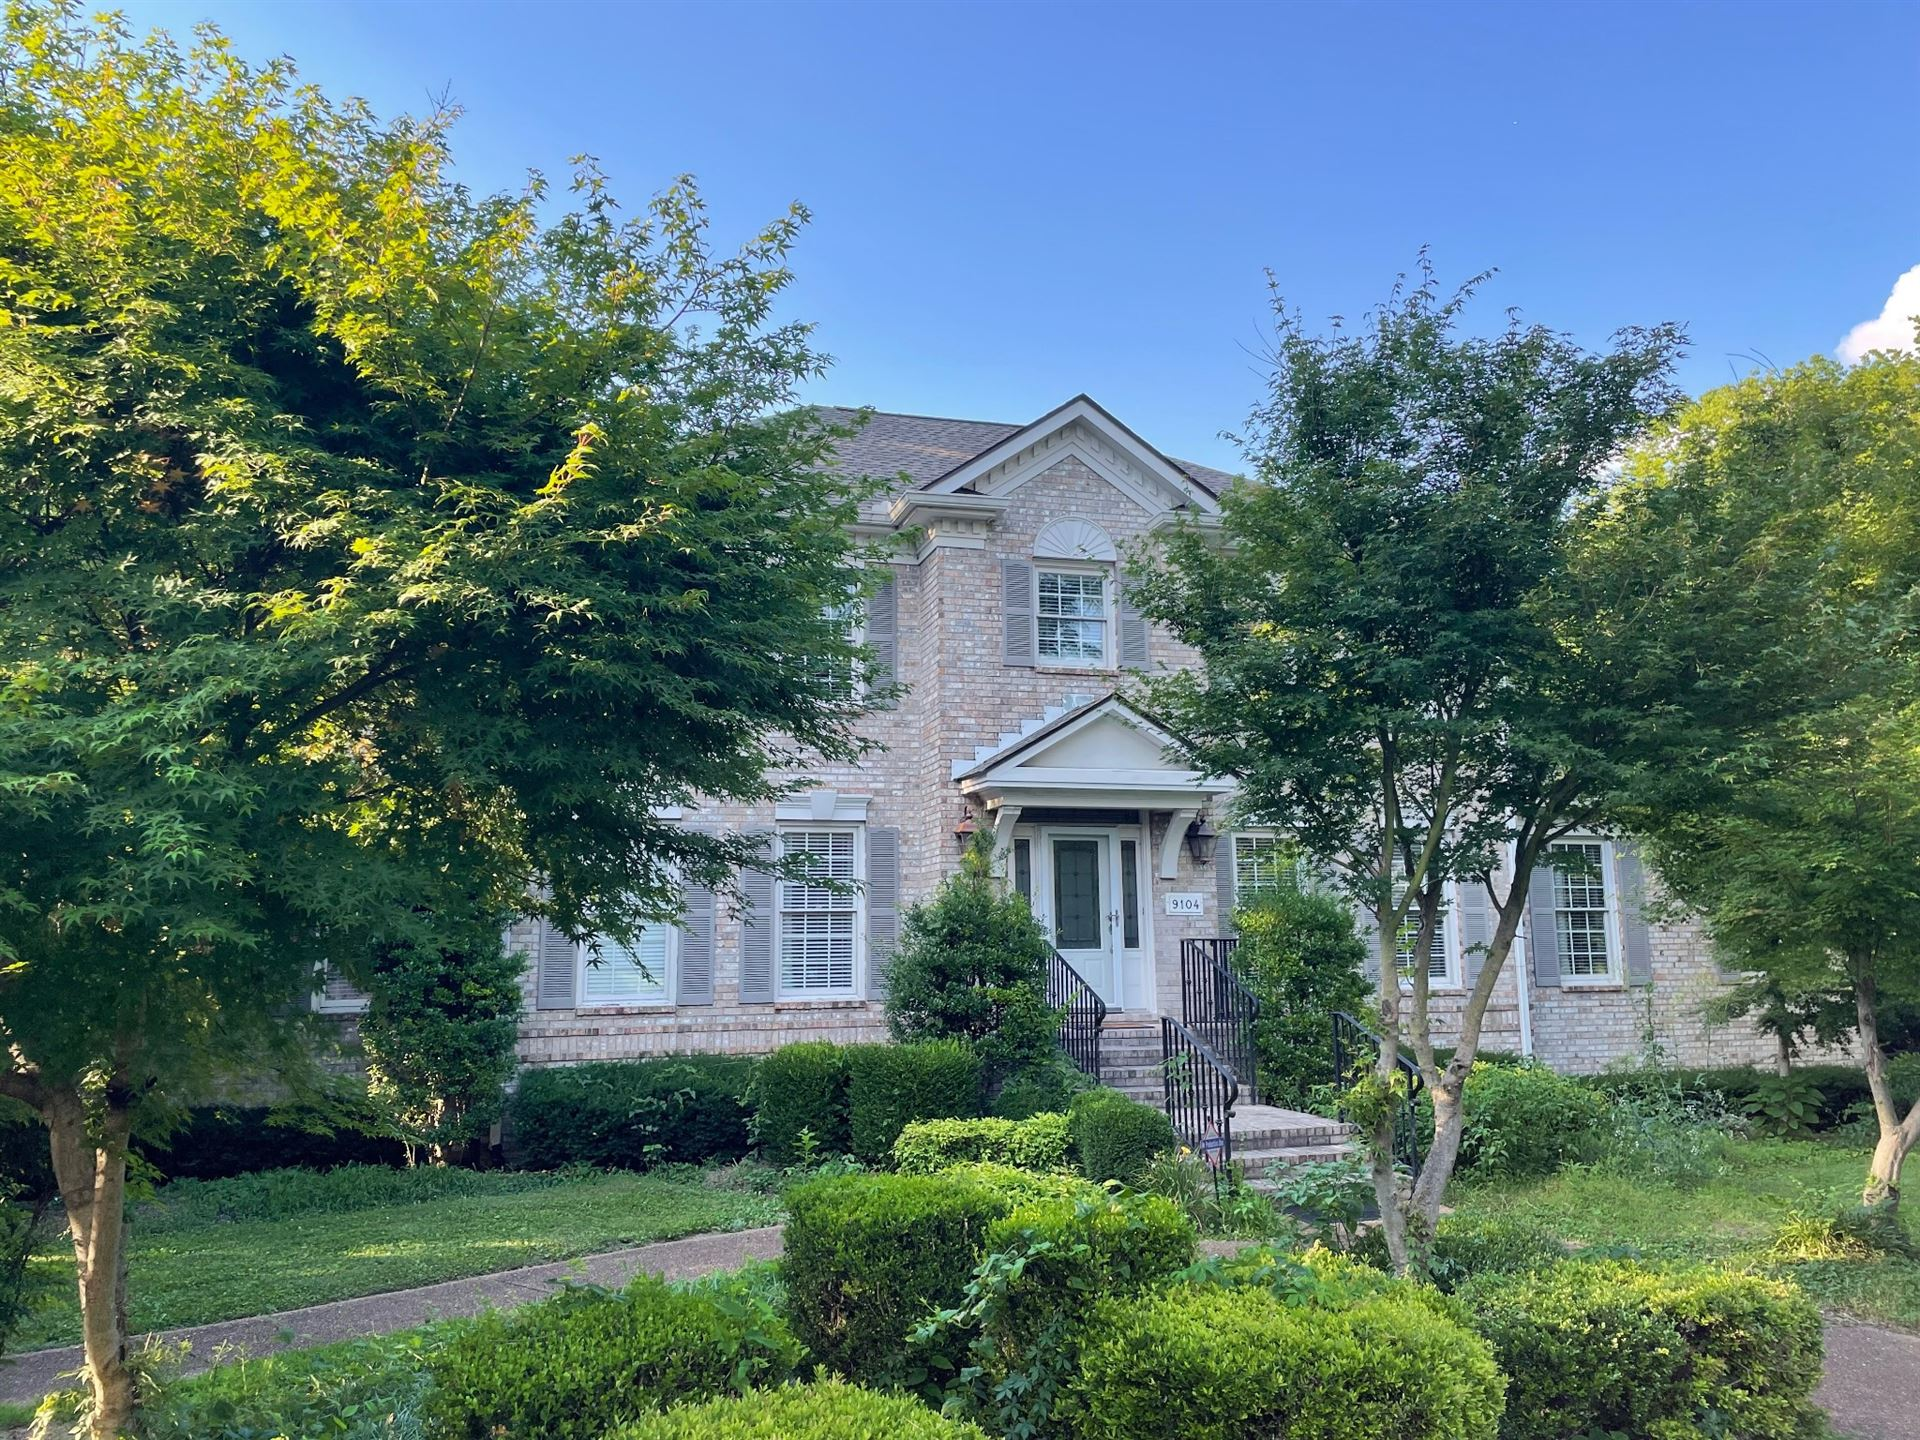 9104 Concord Rd, Brentwood, TN 37027 - MLS#: 2263626